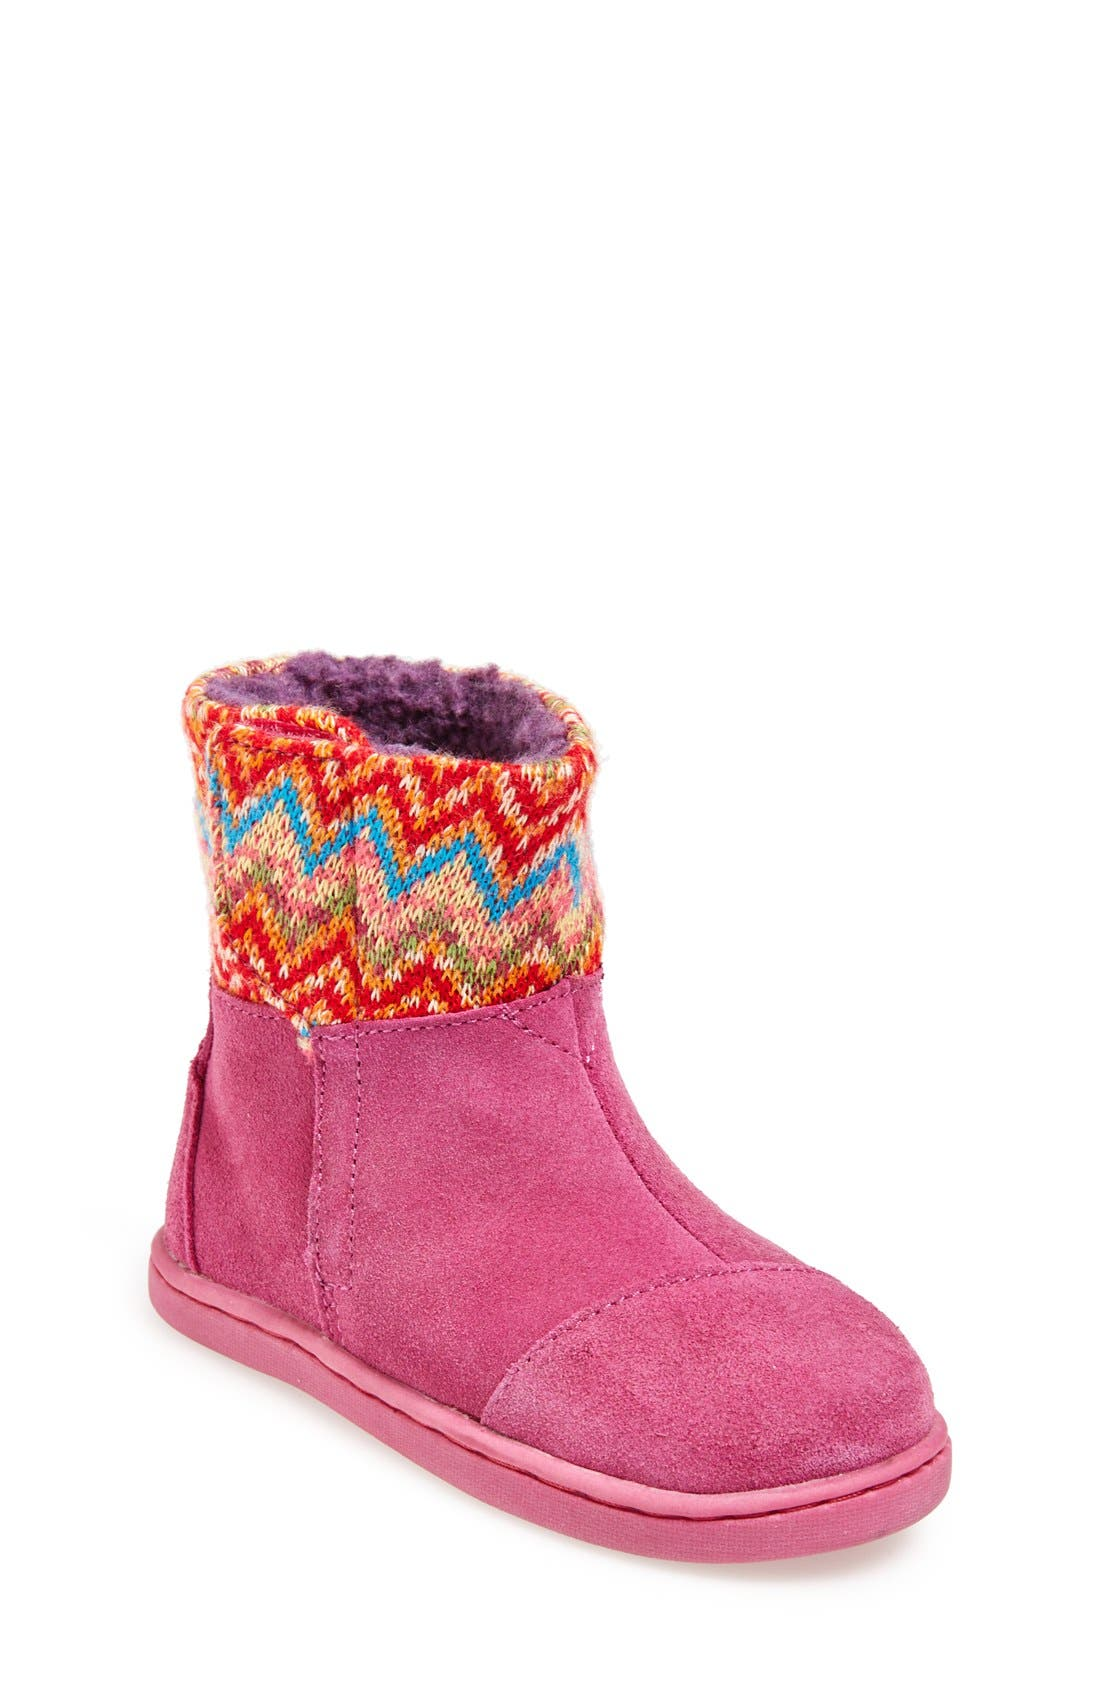 'Nepal - Tiny' Boot,                         Main,                         color, Pink Multi Zigzag